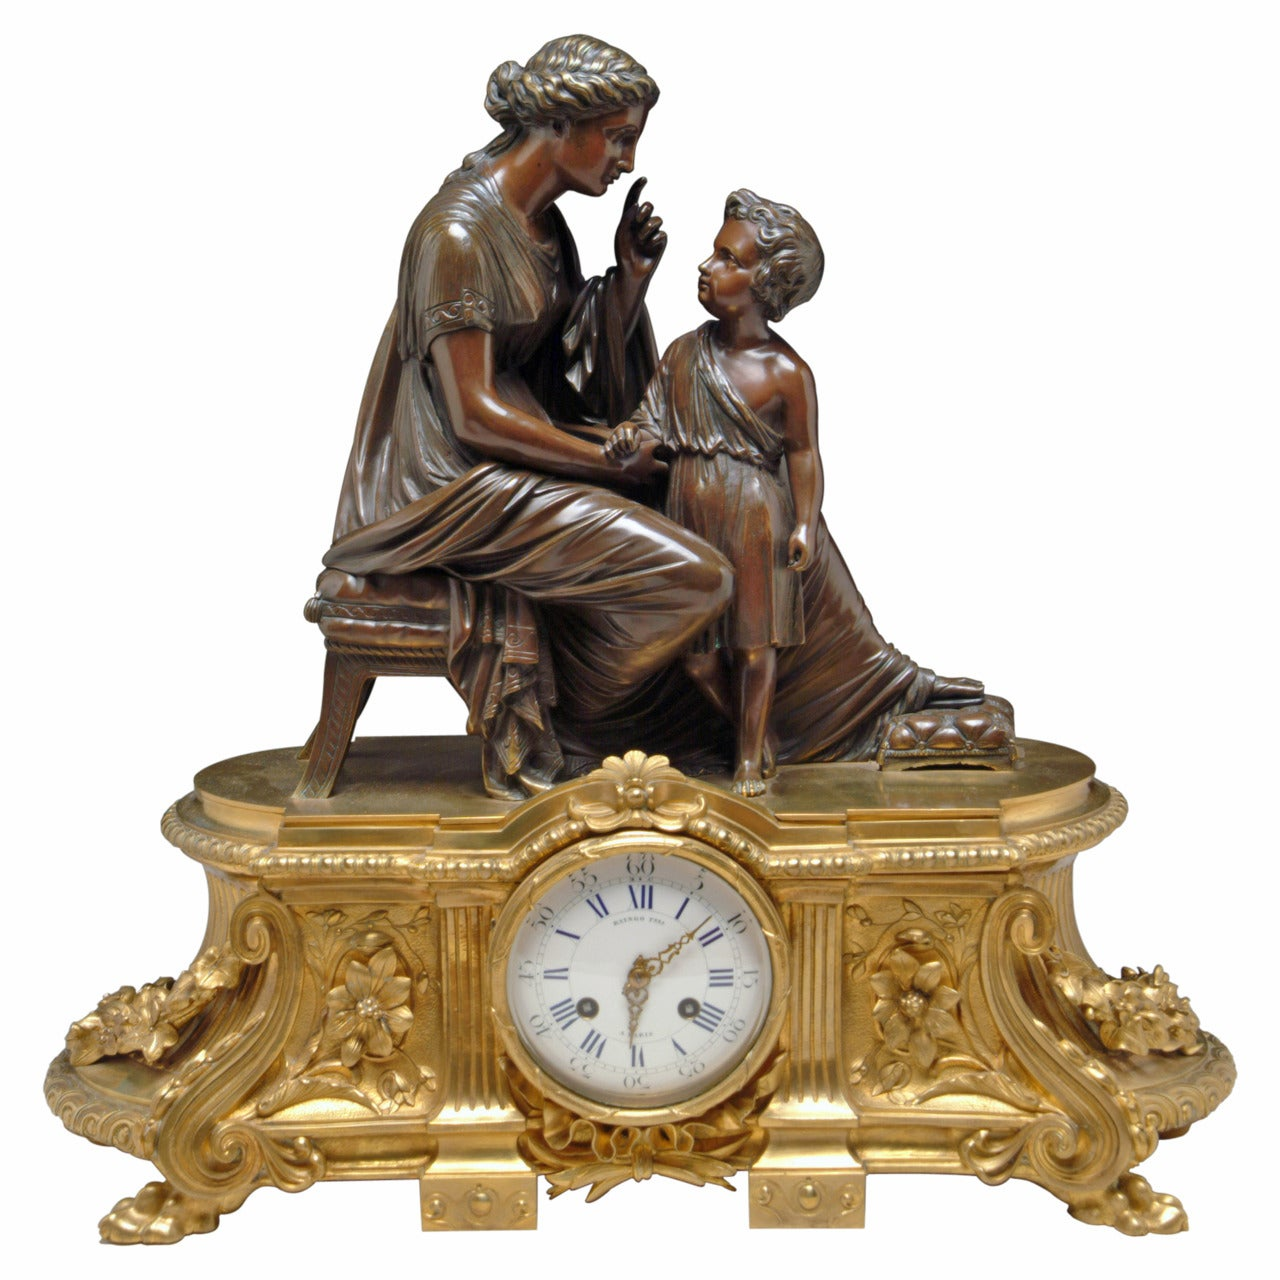 A 19th Century French Gilt & Patinated Bronze Figural Mantel Clock by Raingo